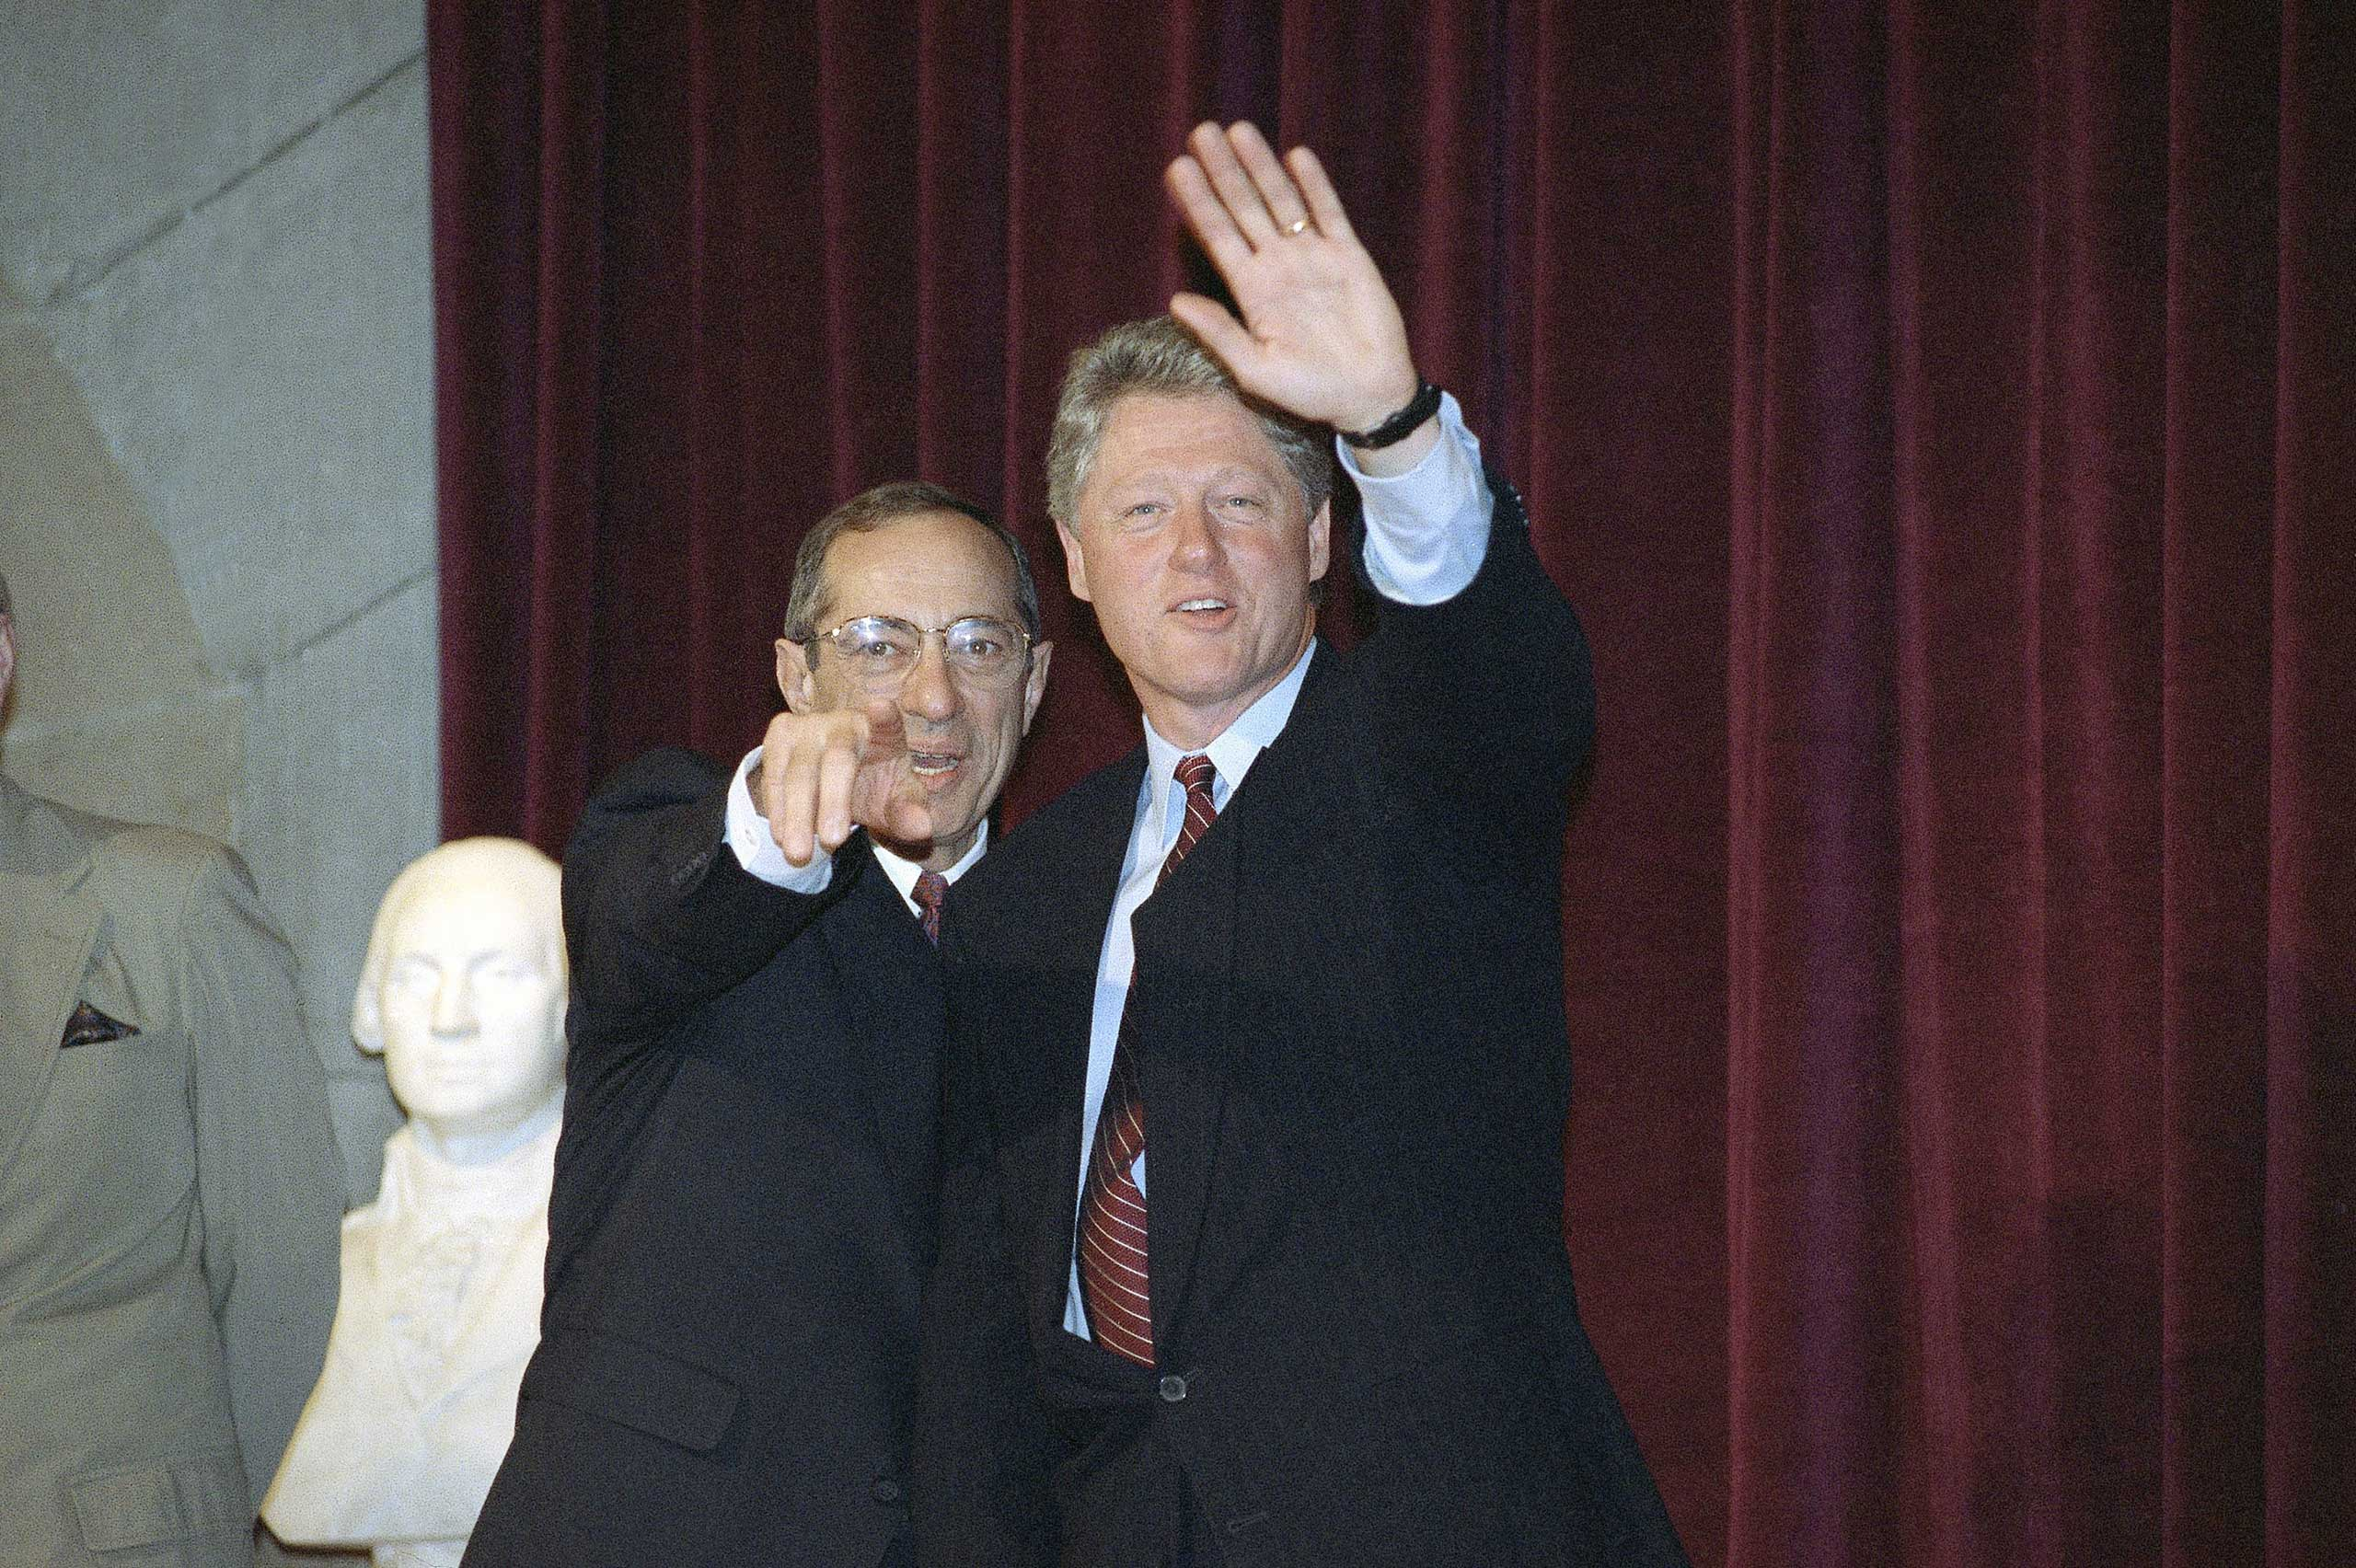 New York Governor Mario Cuomo points toward the camera as President Bill Clinton waves at the Cooper Union College in New York City on May 12, 1993.